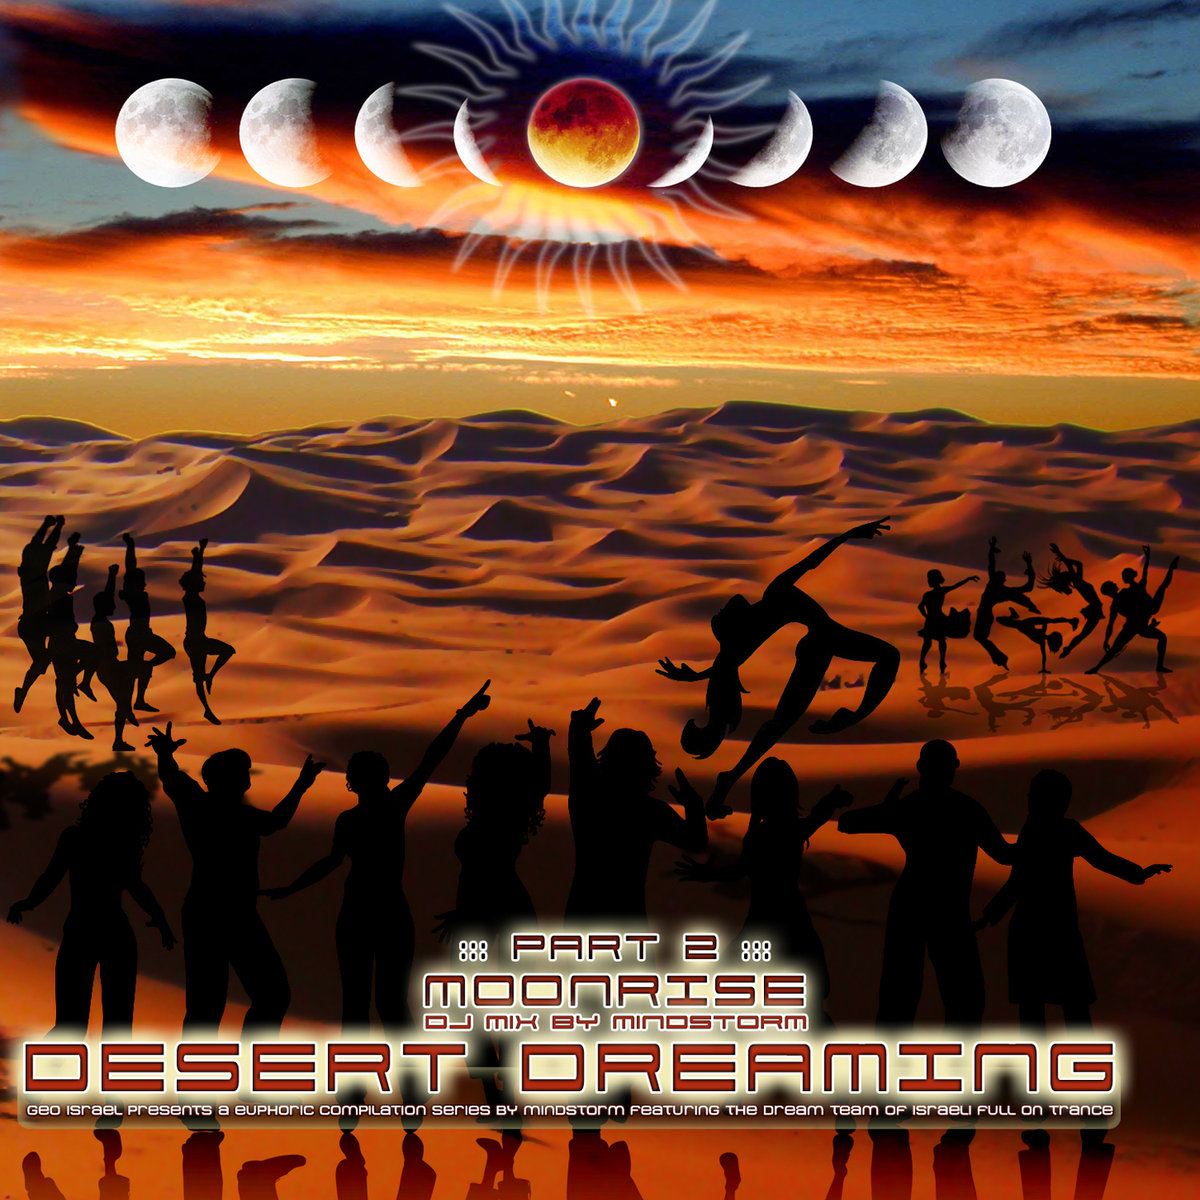 Injection vs. DNA - Genesis @ 'Various Artists - Desert Dreaming Part 2: Moonrise (DJ Mix by Mindstorm)' album (electronic, goa)